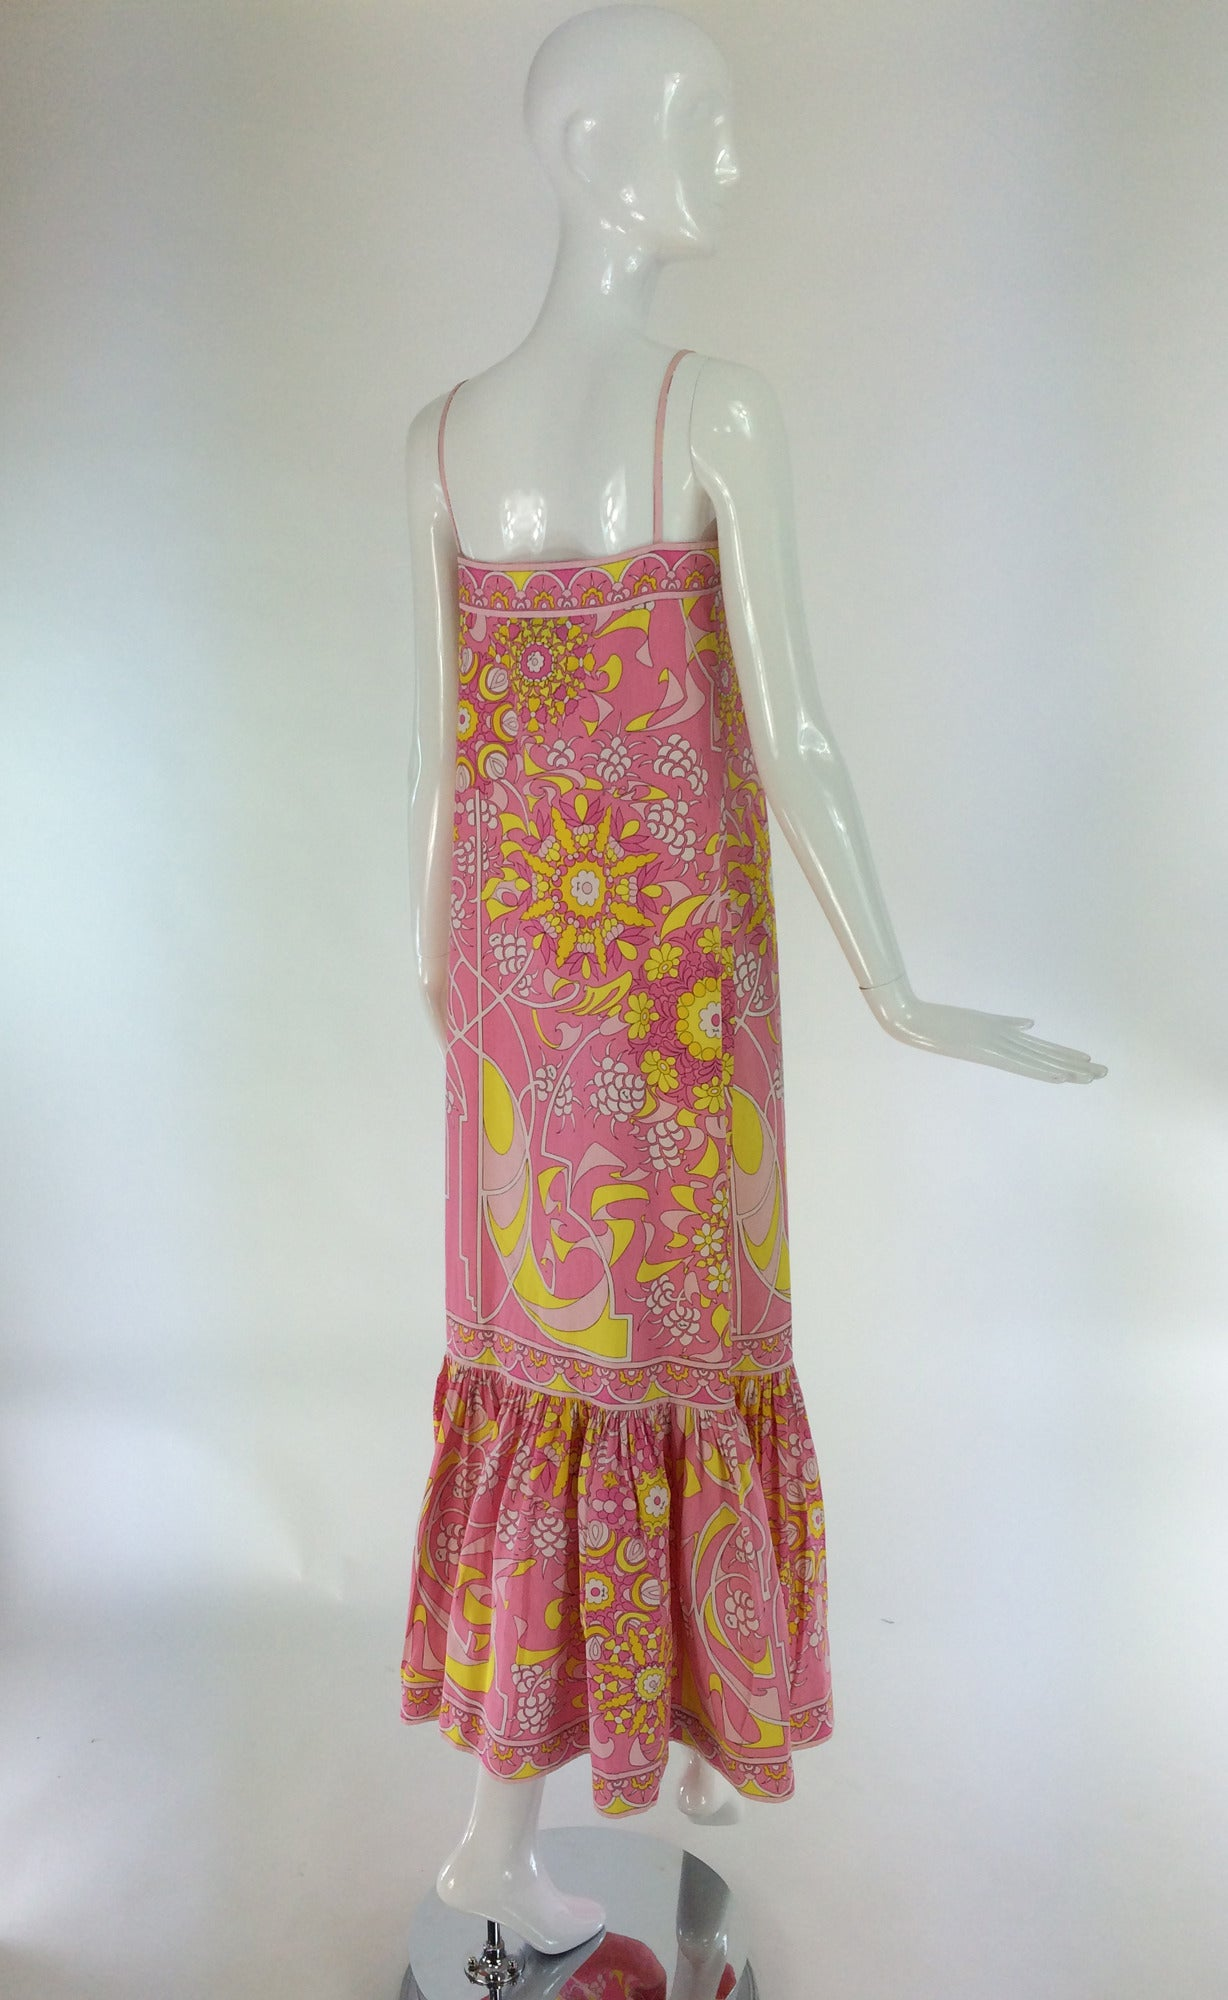 Emilio Pucci printed cotton maxi dress out of the ordinary design 1960s For Sale 1